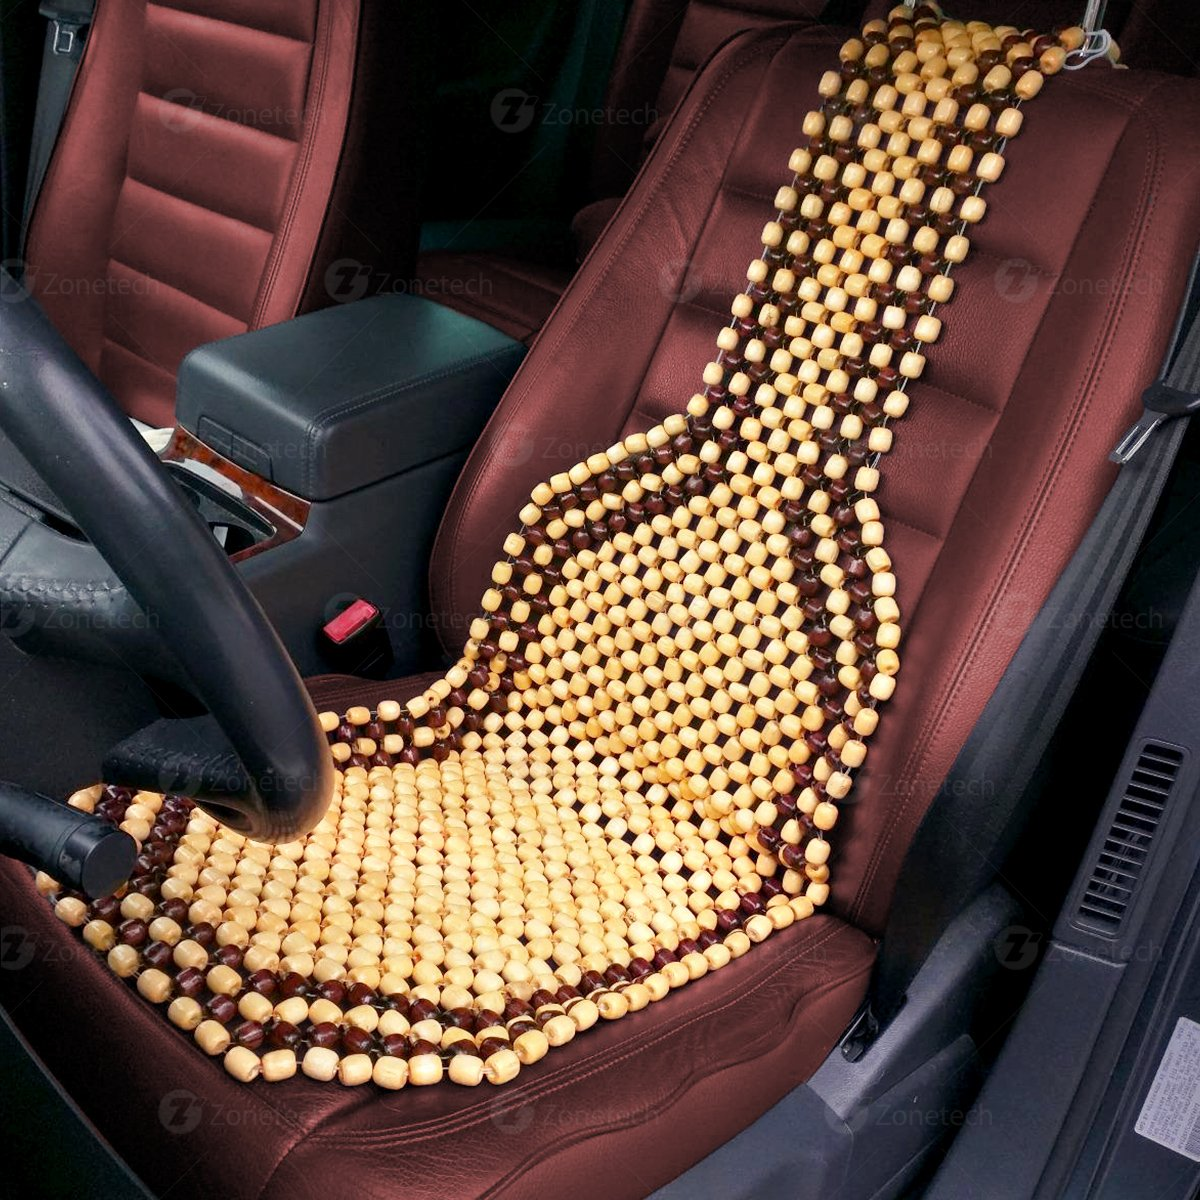 Premium Quality Car Massaging Double Strung Wood Beaded Seat Cushion for Stress Free all Day Zone Tech Wood Beaded Seat Cushion SE0004